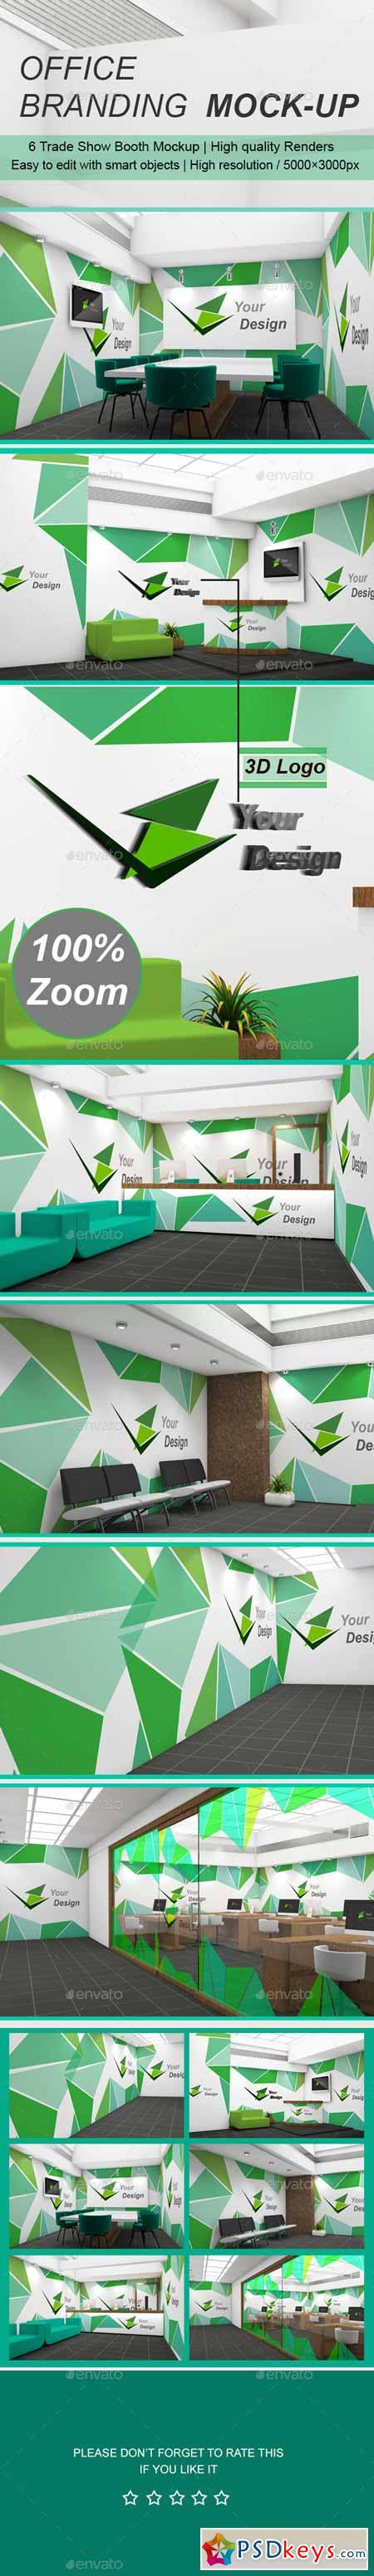 Office Branding Mock-up 11800418